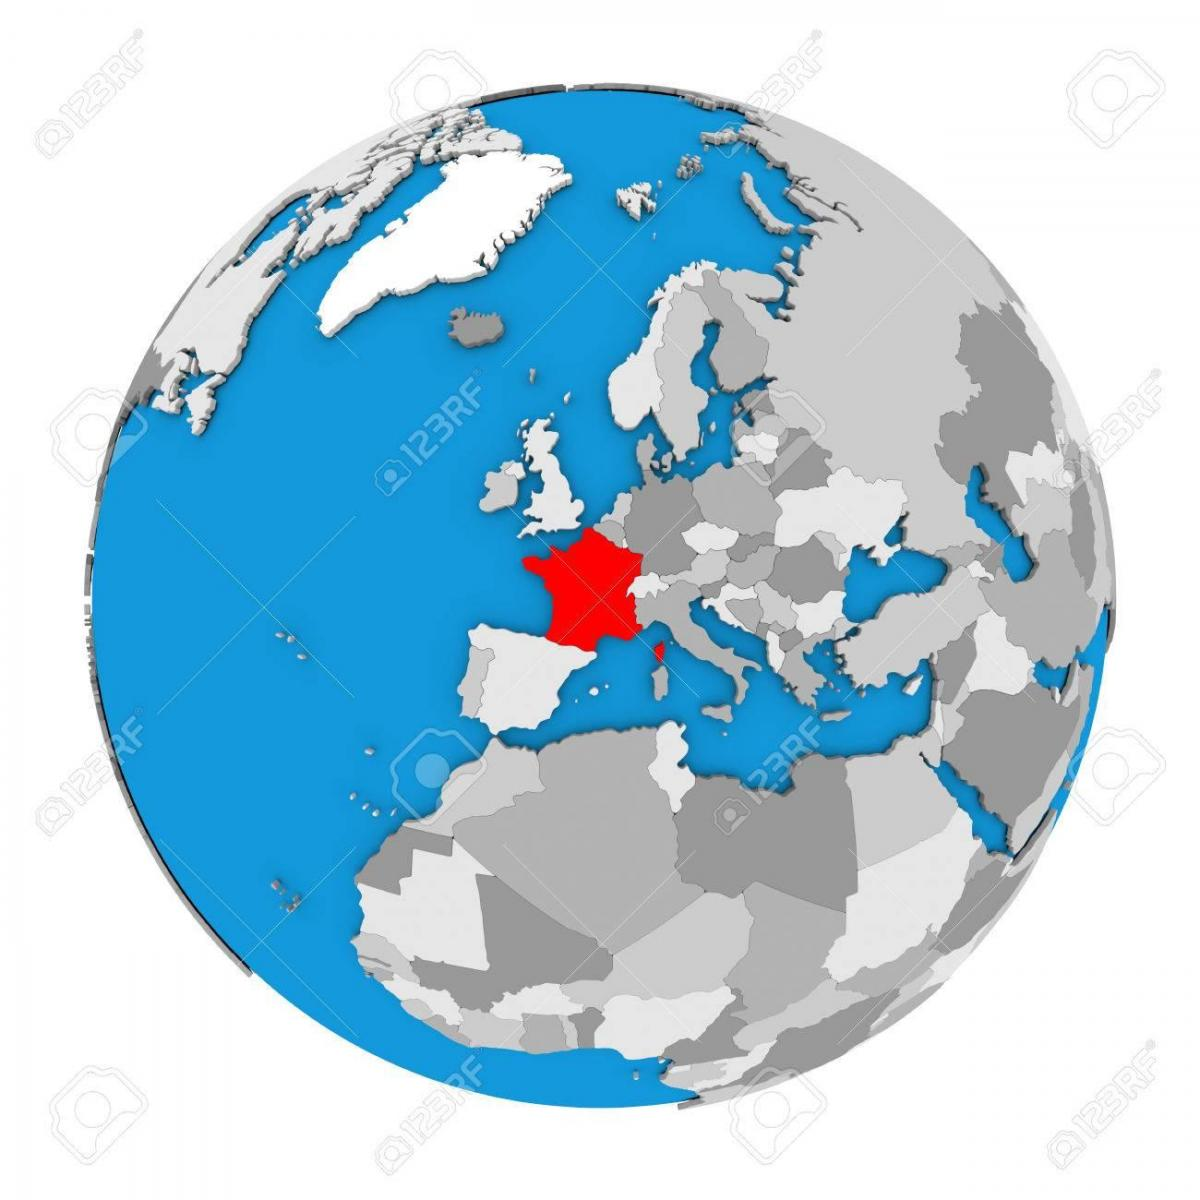 France location on world map - World map with France highlighted ...